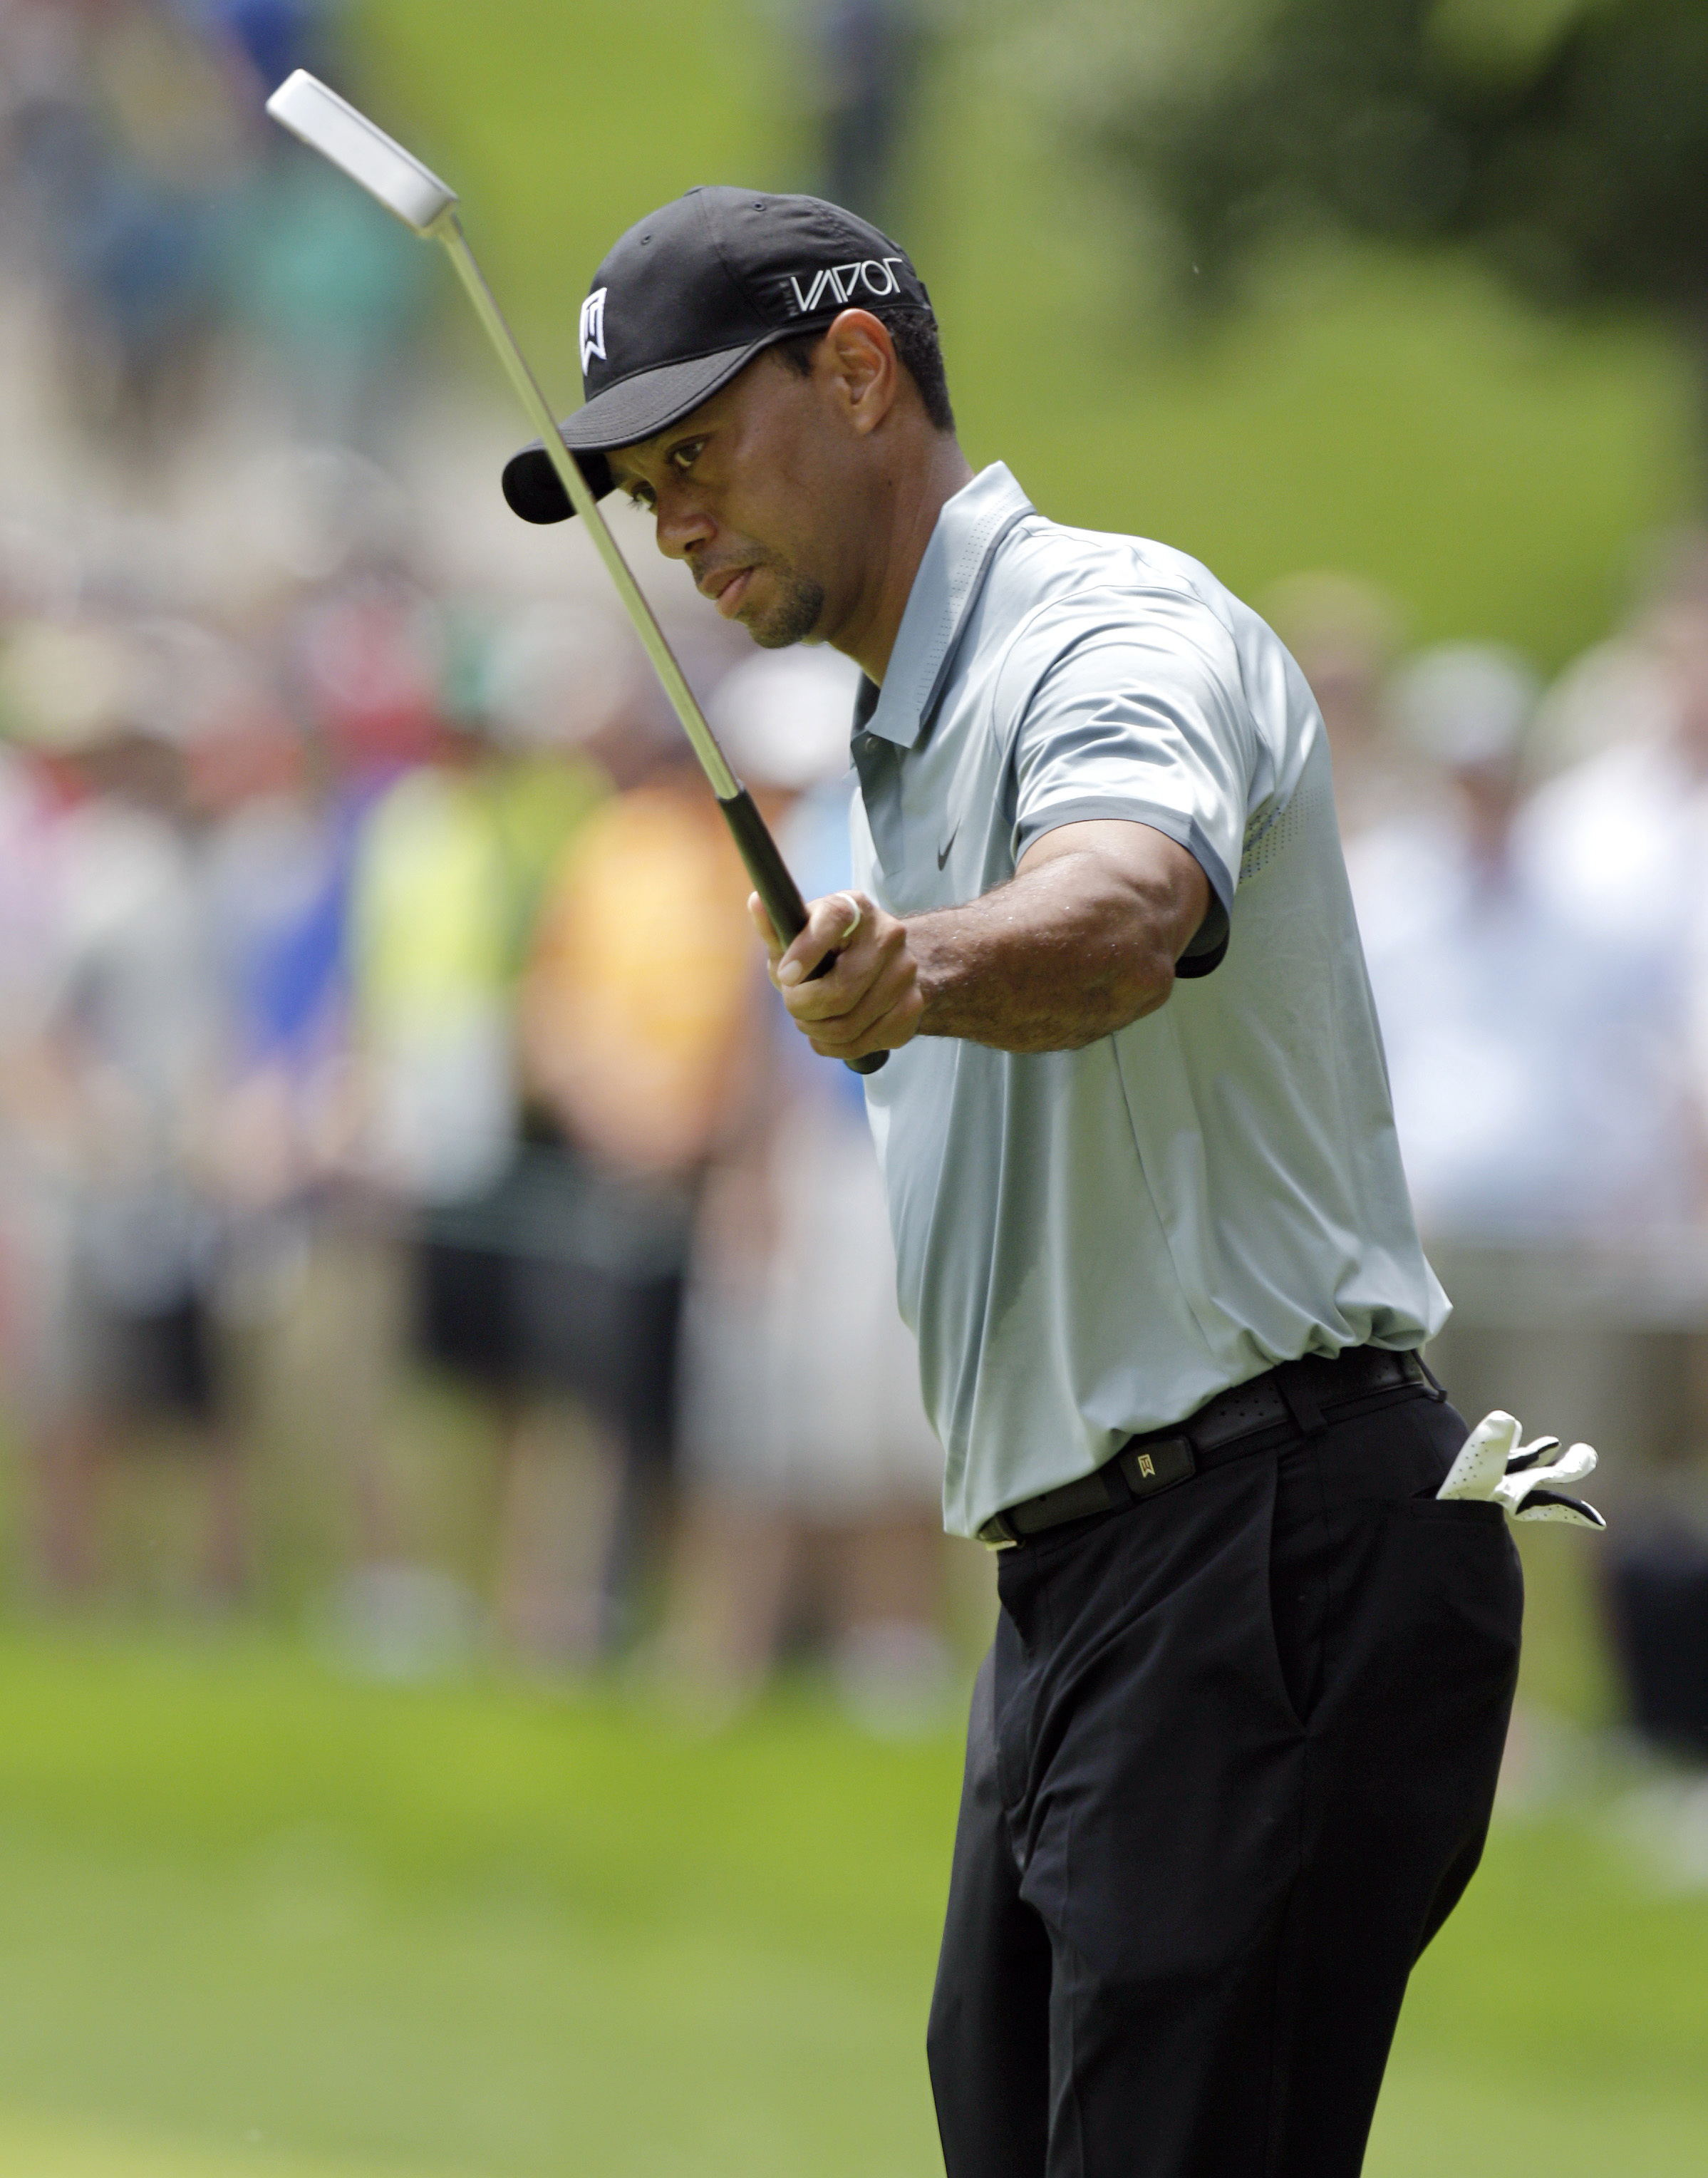 Tiger Woods reacts to making a birdie putt on the second hole during the second round of the Memorial golf tournament, Friday, June 5, 2015, in Dublin, Ohio. (AP Photo/Jay LaPrete)